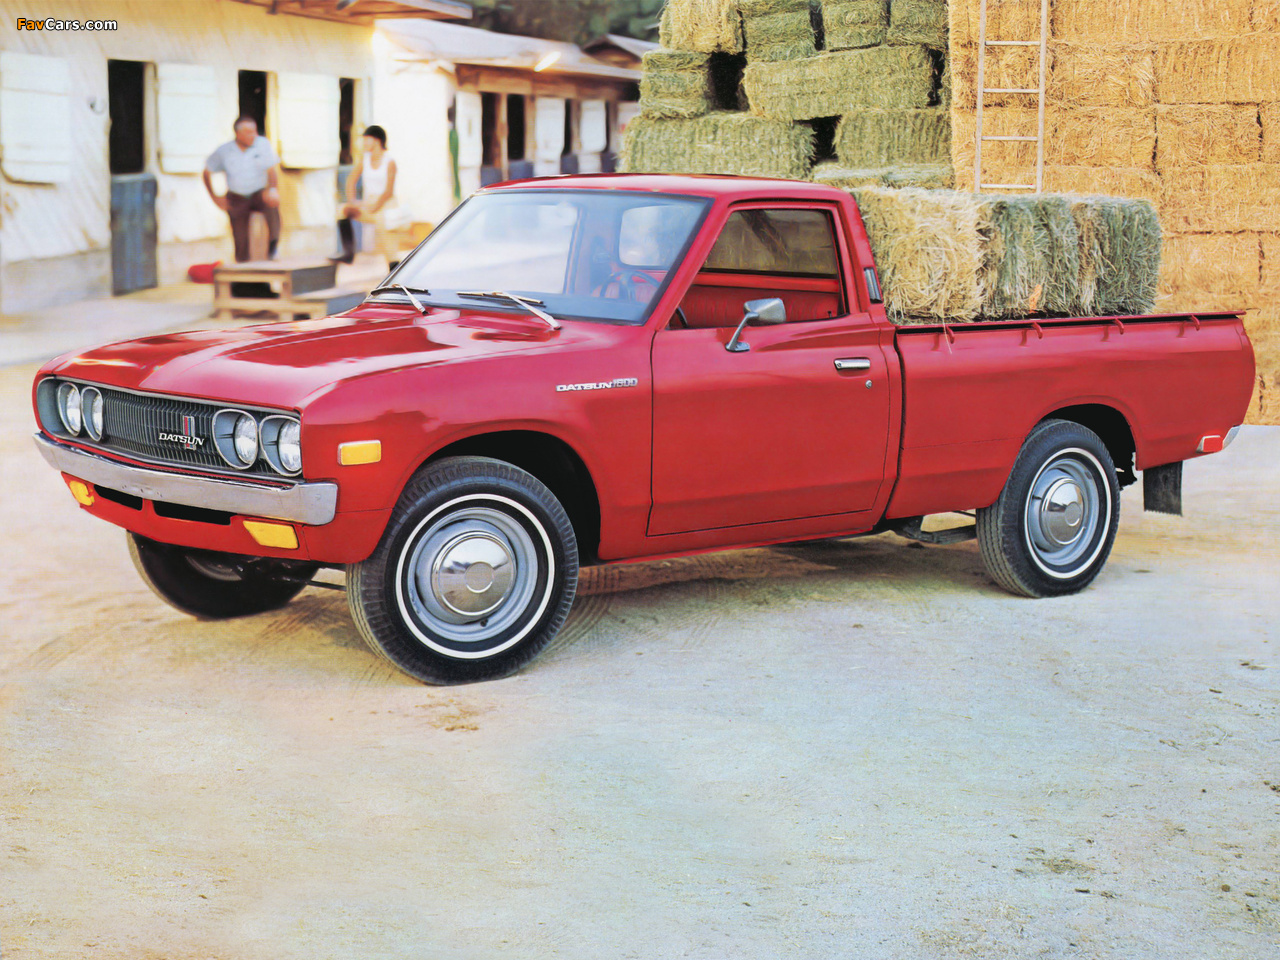 Wallpaper 11 also Wallpaper 20 moreover Nissan Bluebird Sedan 910 1979 83 Wallpapers 28920 also Wallpapers Datsun Pickup 620 1972 79 209600 in addition Nissan S15 Silvia White Volk Te37sl. on nissan an